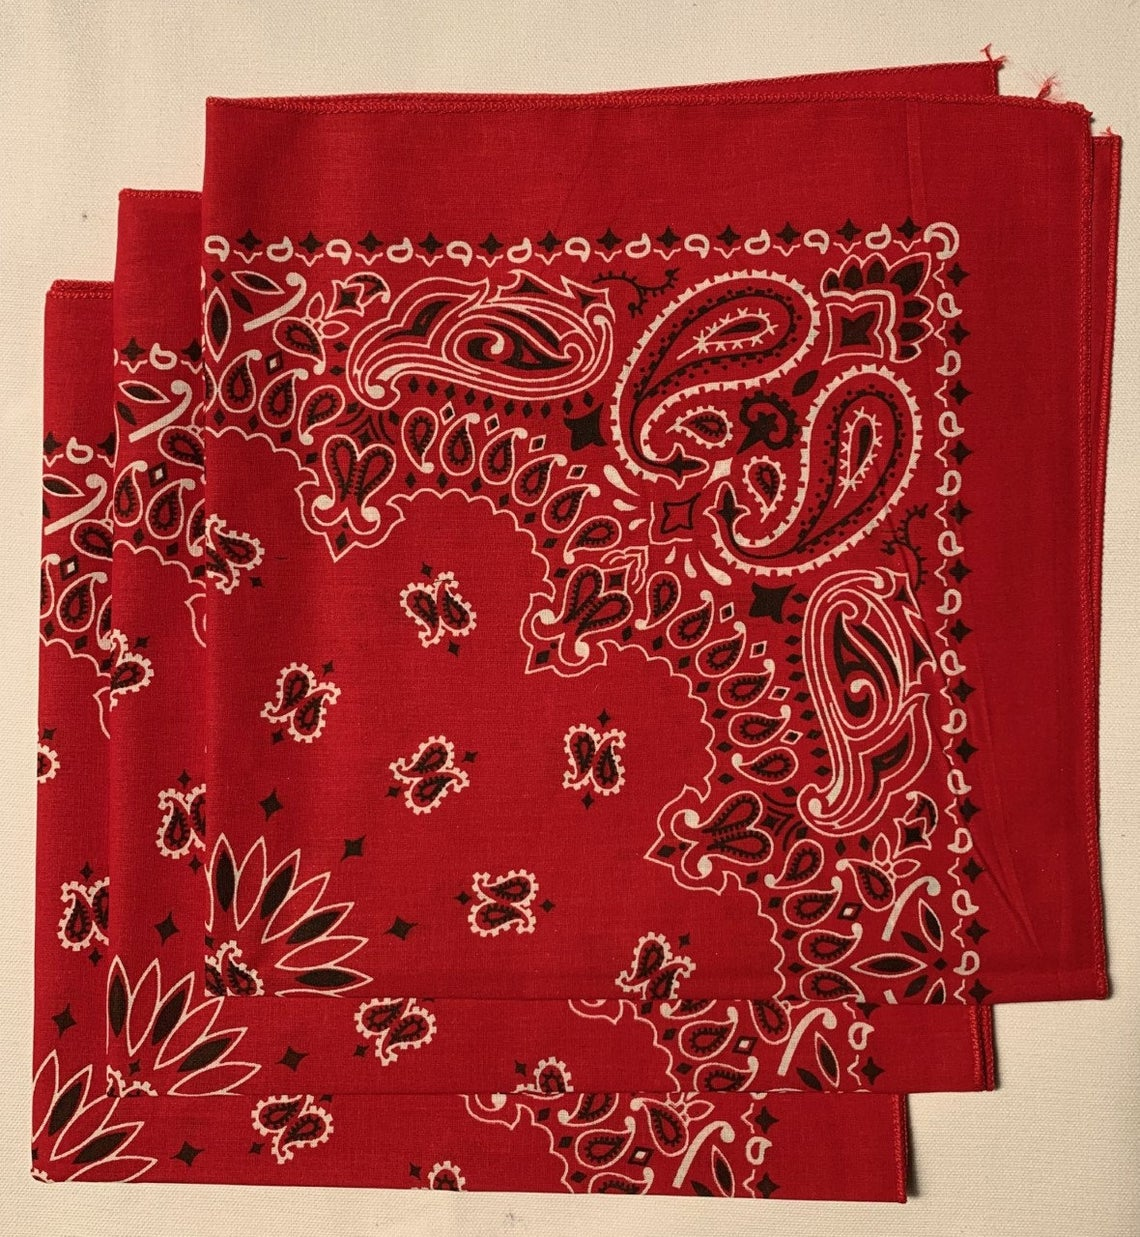 "Red Paisley Bandanas - Made In The USA (3 Pk) 22"" x 22"""